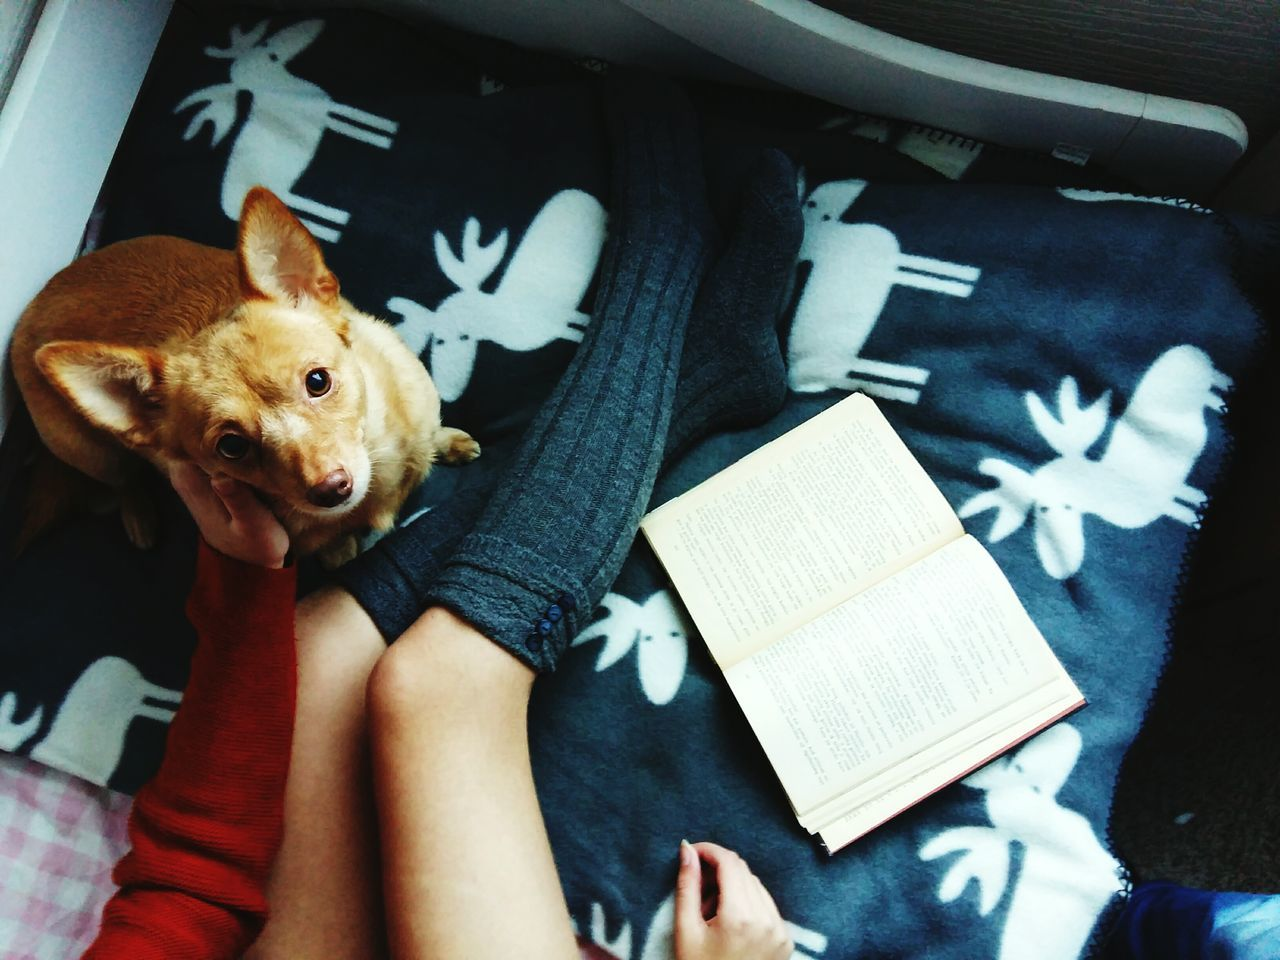 Always Be Cozy Dog Pets One Person Indoors  One Animal Day Looking At Camera Cozy At Home Cozy Cozytime Domestic Animals Animal Themes Mammal People Adult Human Body Part